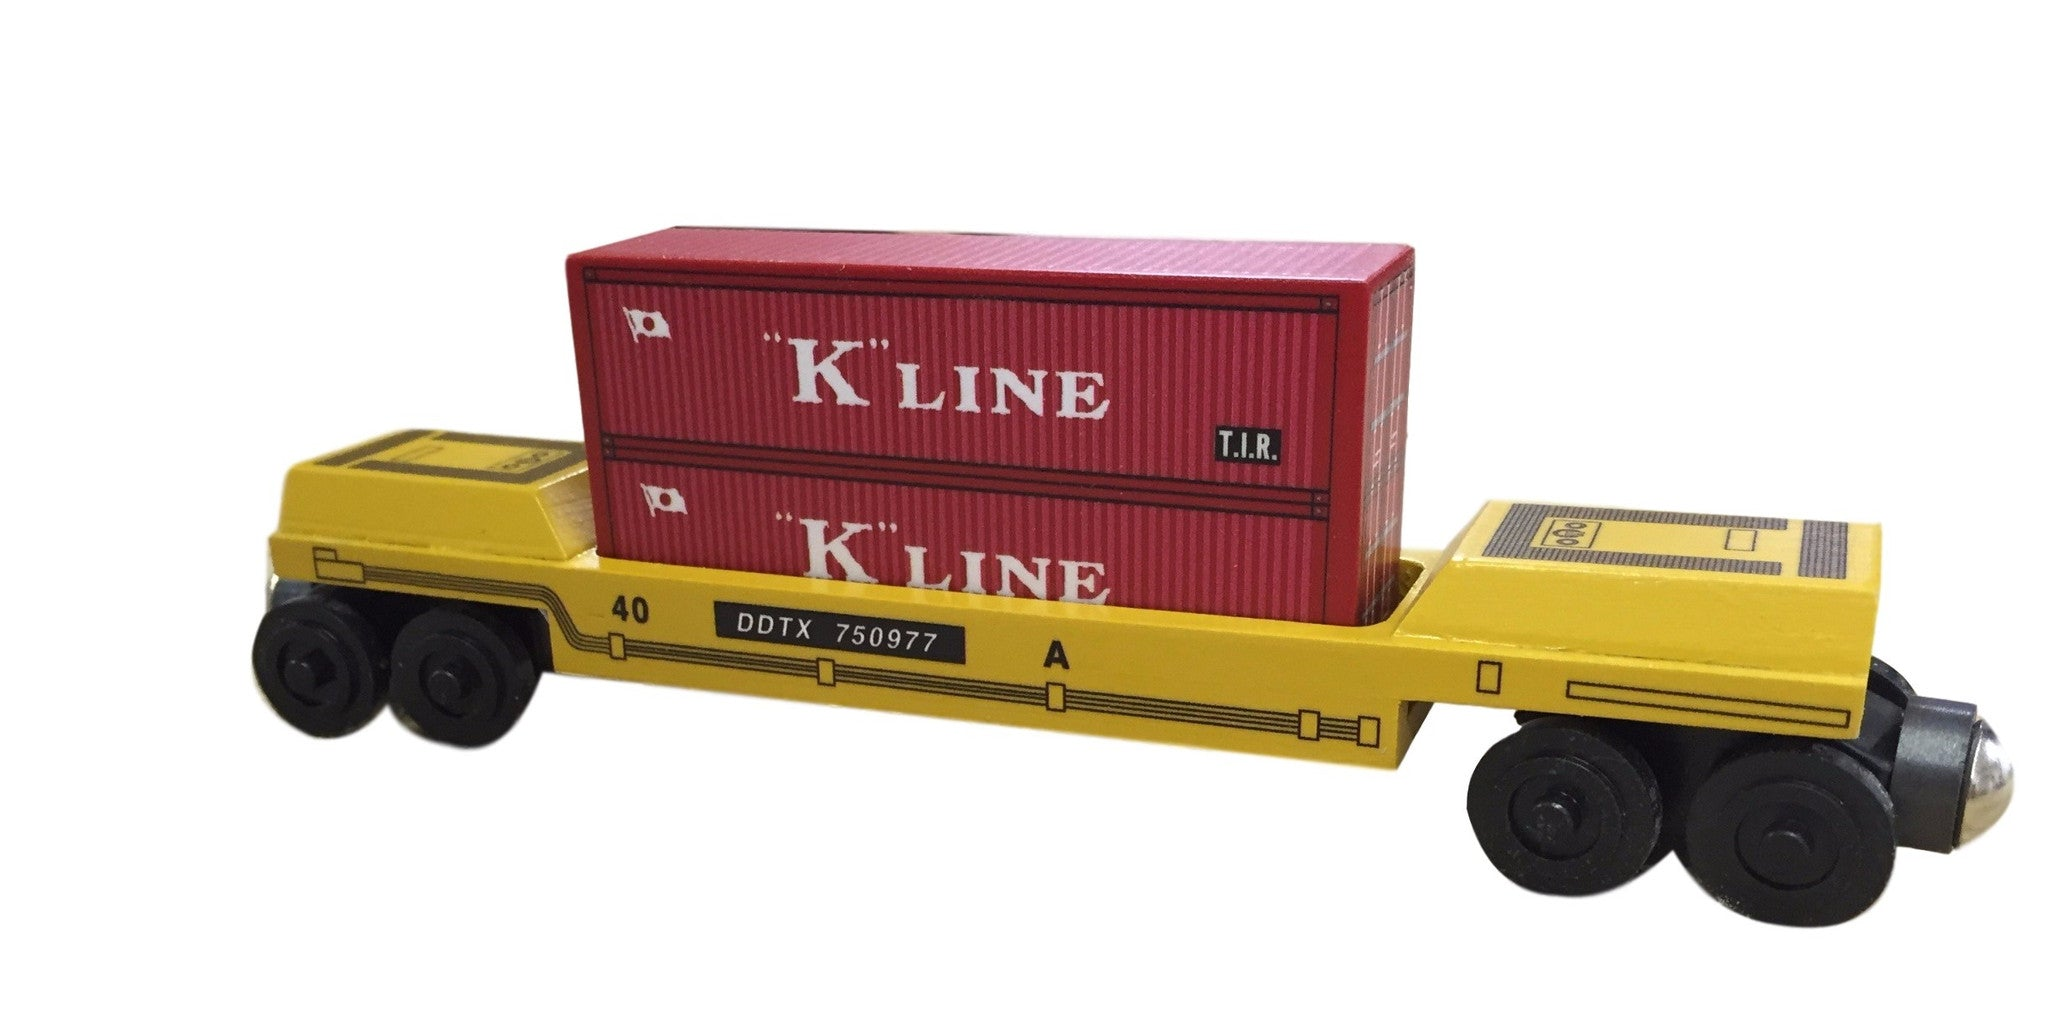 Whittle Shortline Railroad K-Line Doublestack Car Wooden Toy Train